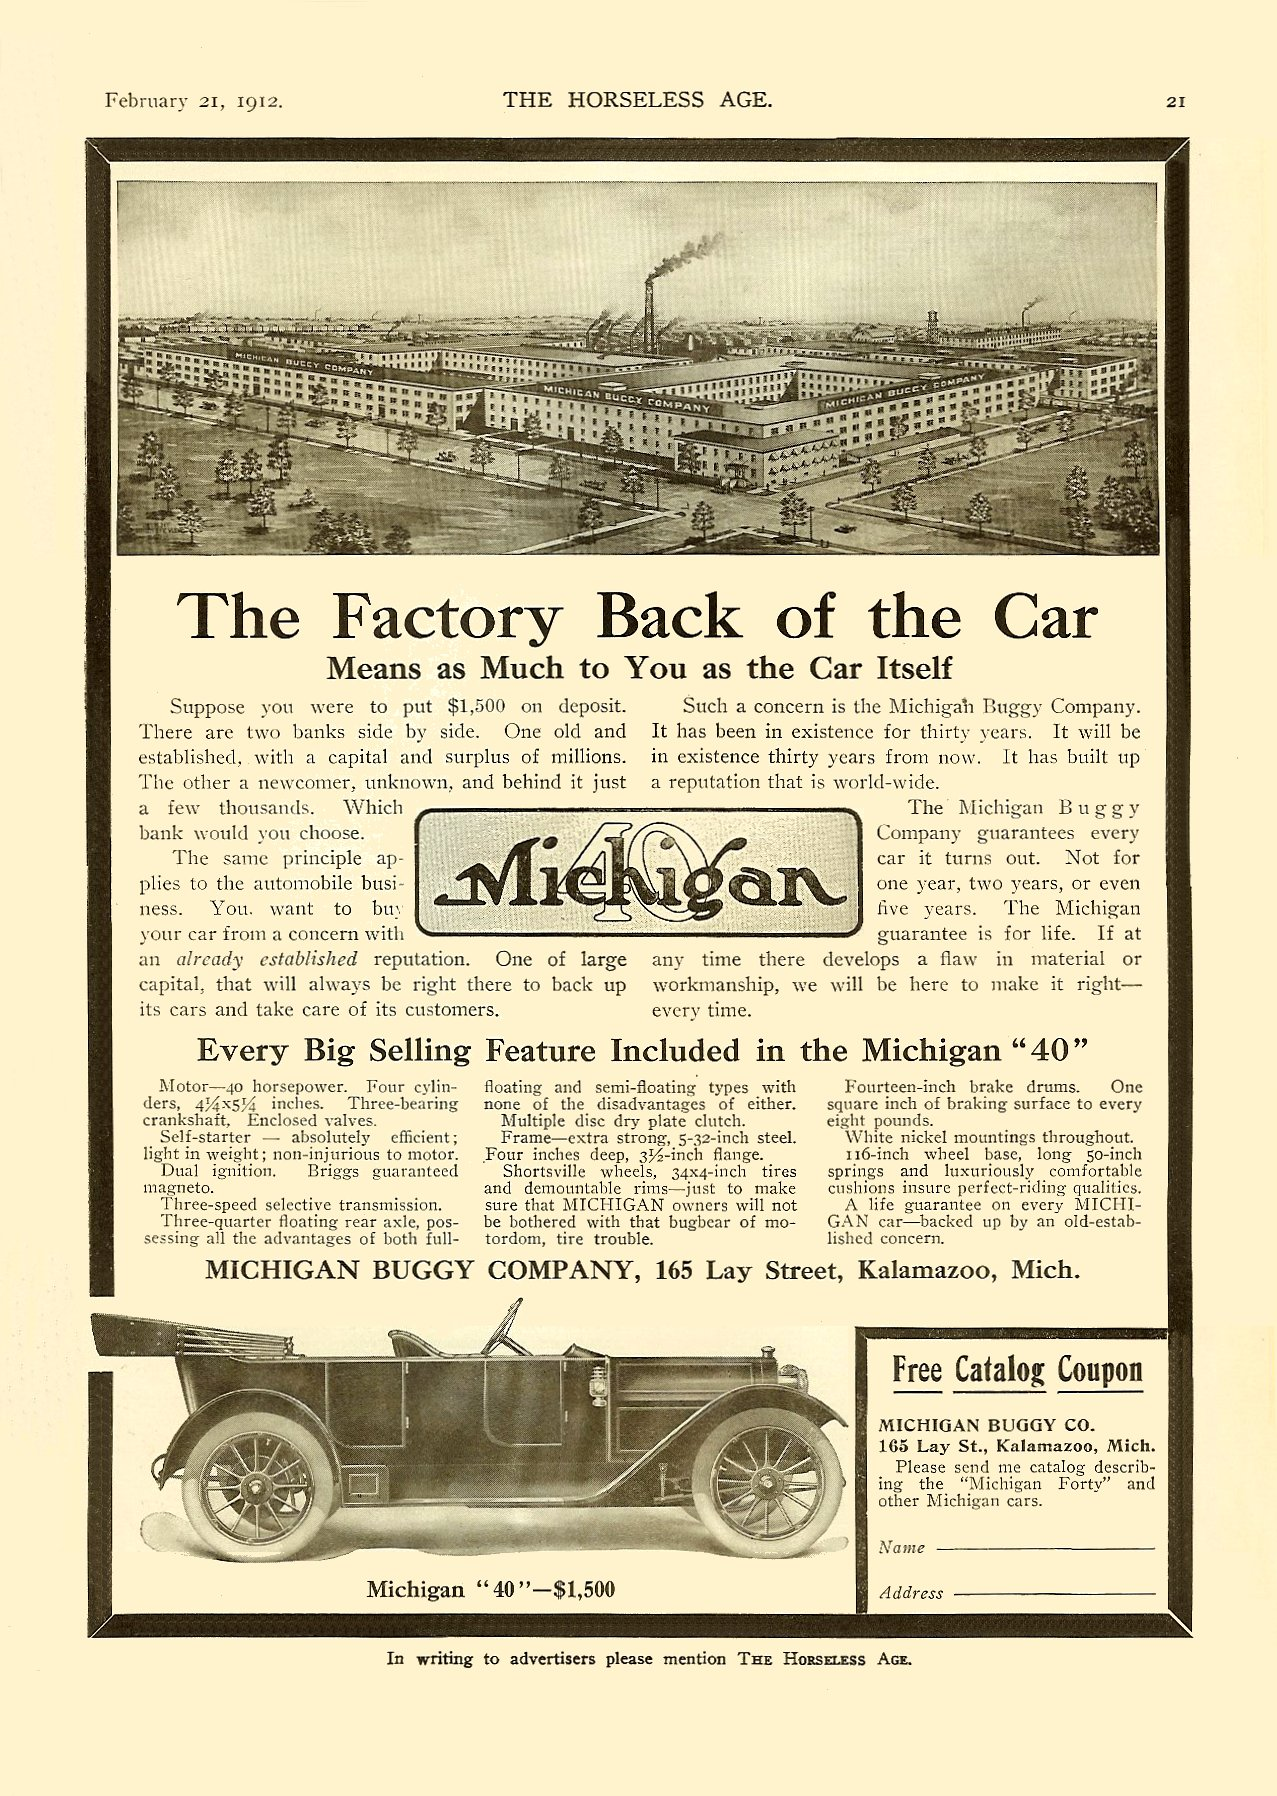 1912 2 21 Michigan 40 The Factory Back of the Car Michigan Buggy Co Kalamazoo, MICH THE HORSELESS AGE Vol. 29, No. 8 February 21, 1912 9″x12″ page 21